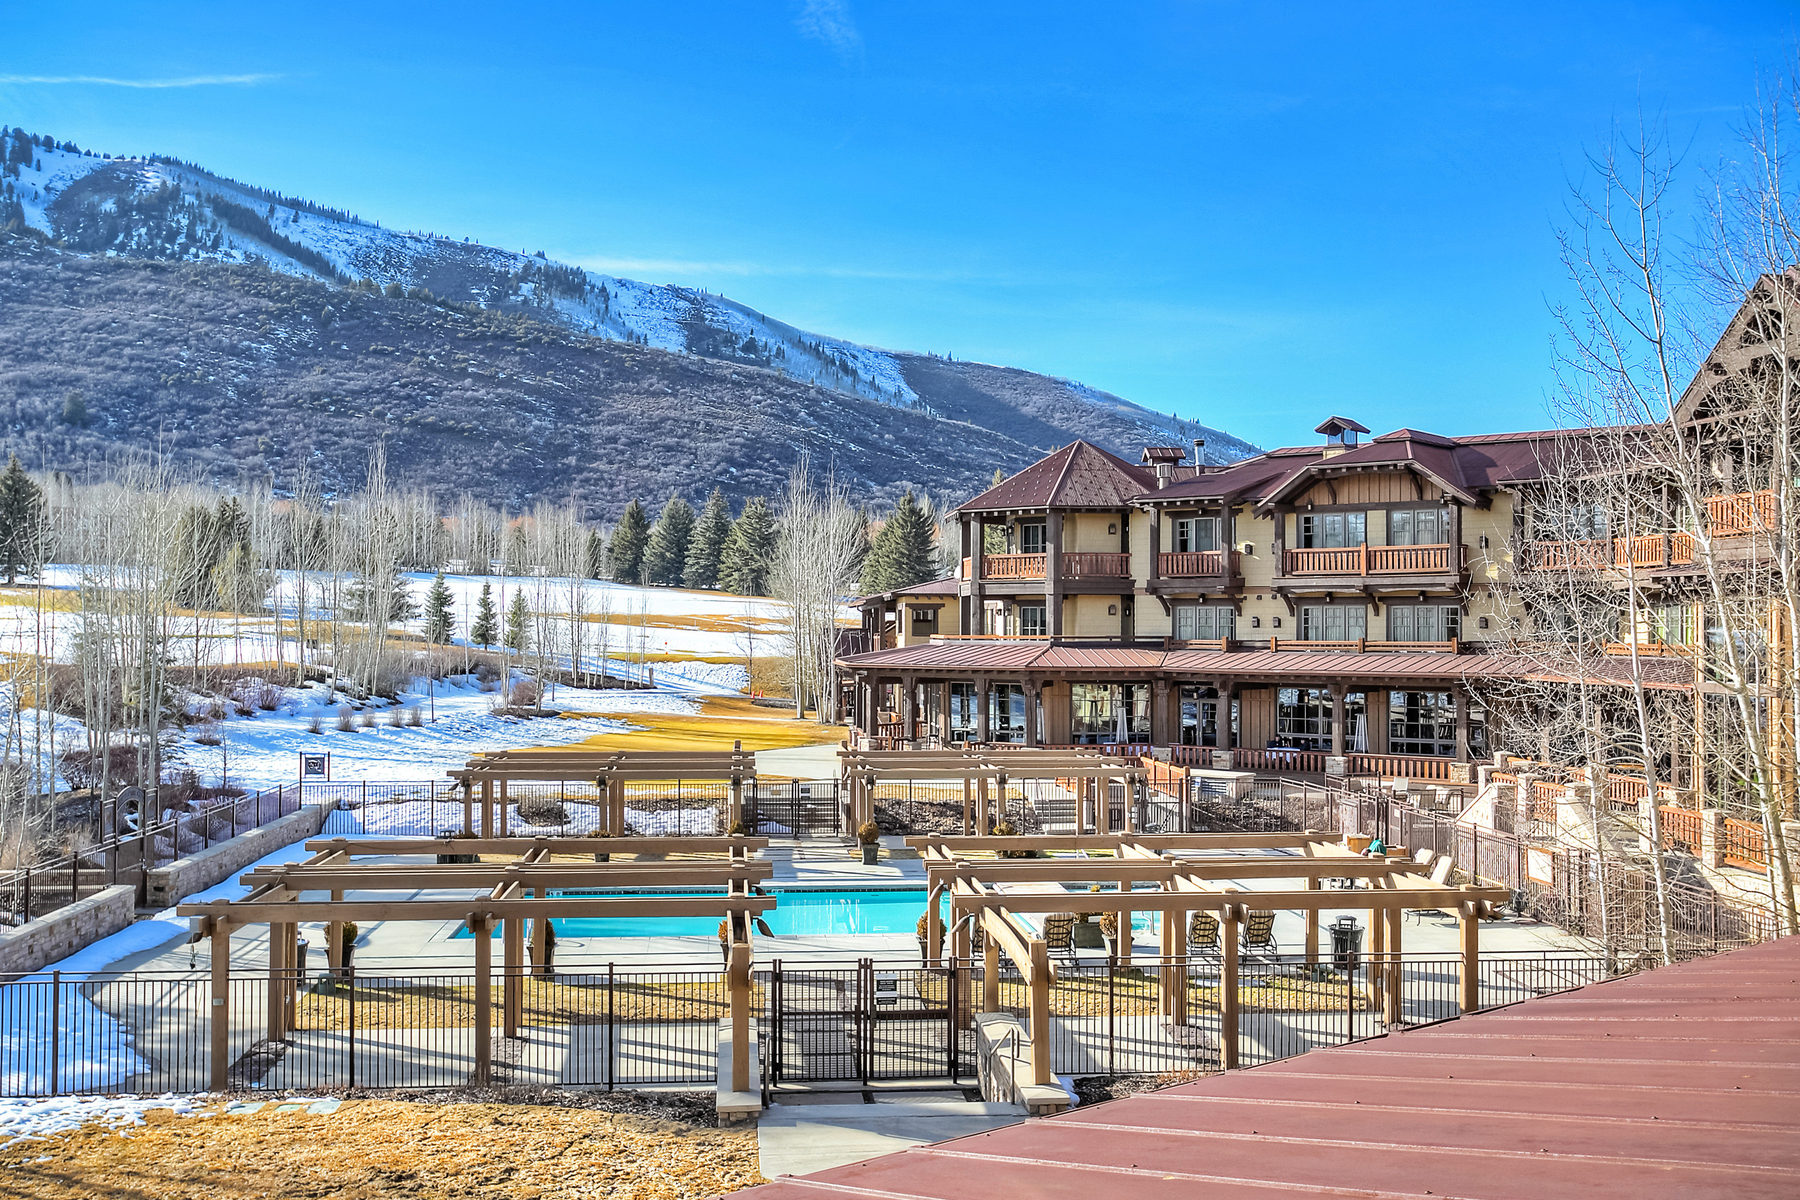 Condominium for Sale at Executive Suite in the Heart of Park City 2001 Park Ave #225 Park City, Utah 84060 United States